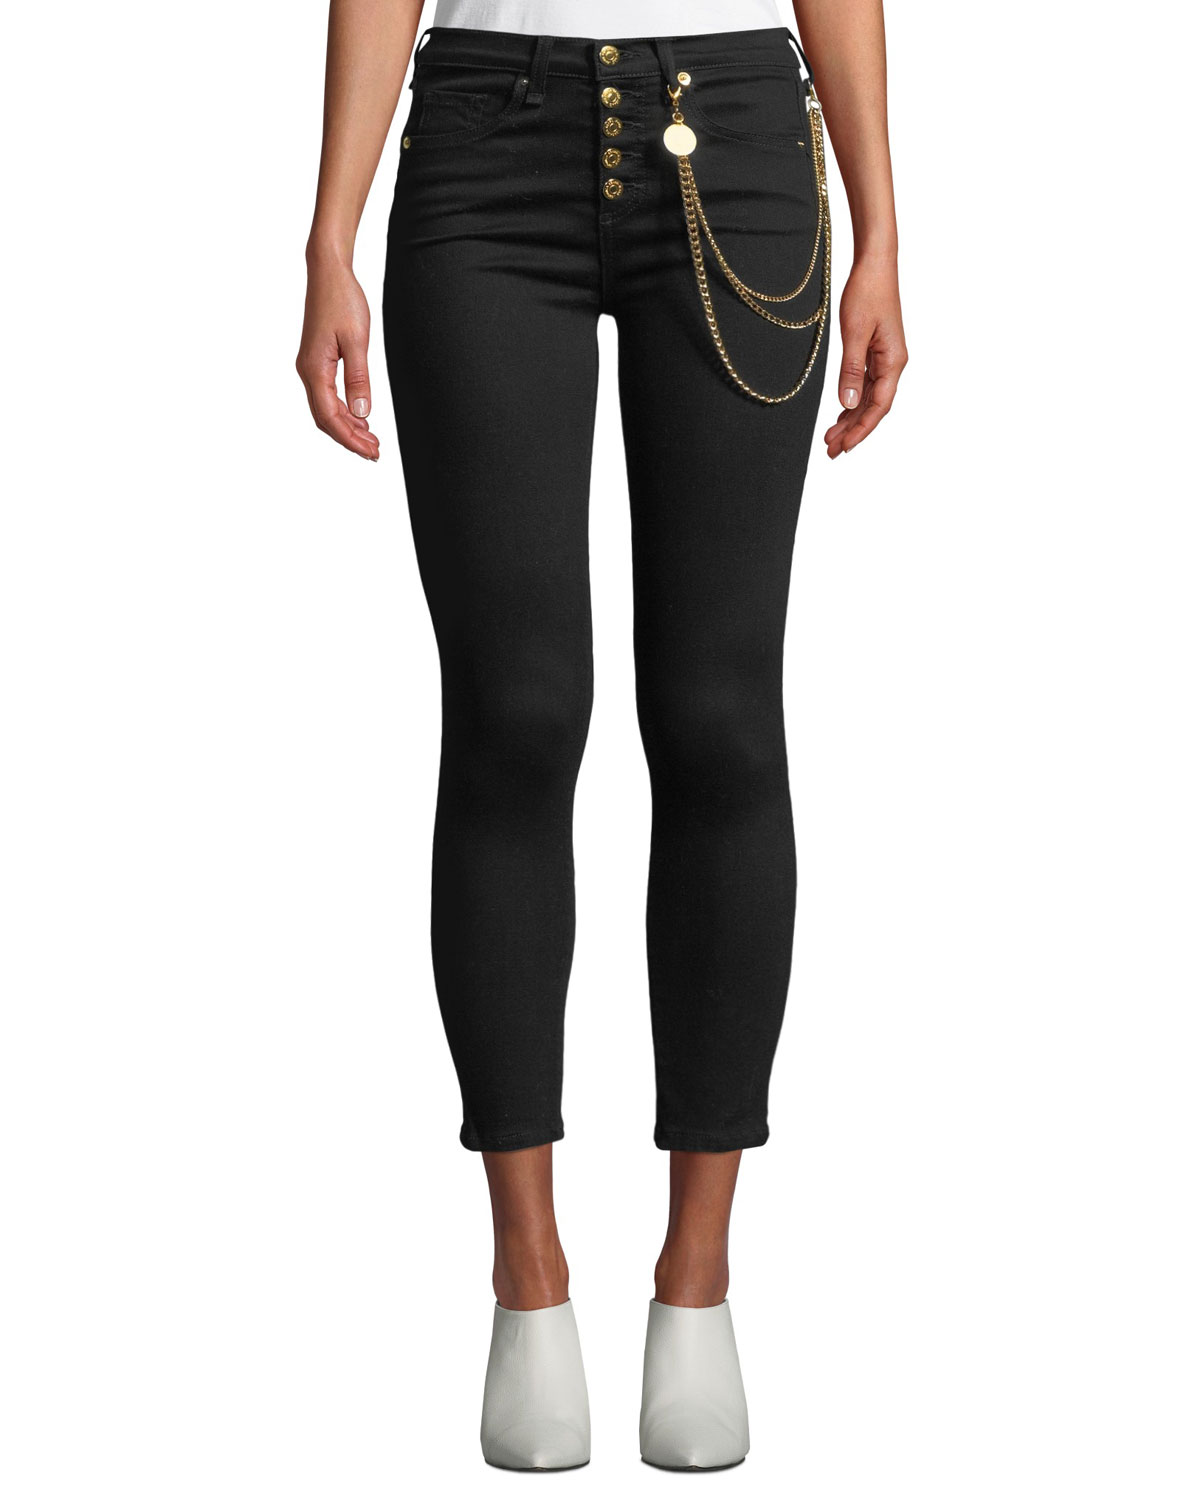 "Debbie 10"" Rise Skinny Jeans With Gold Chains in Raven"